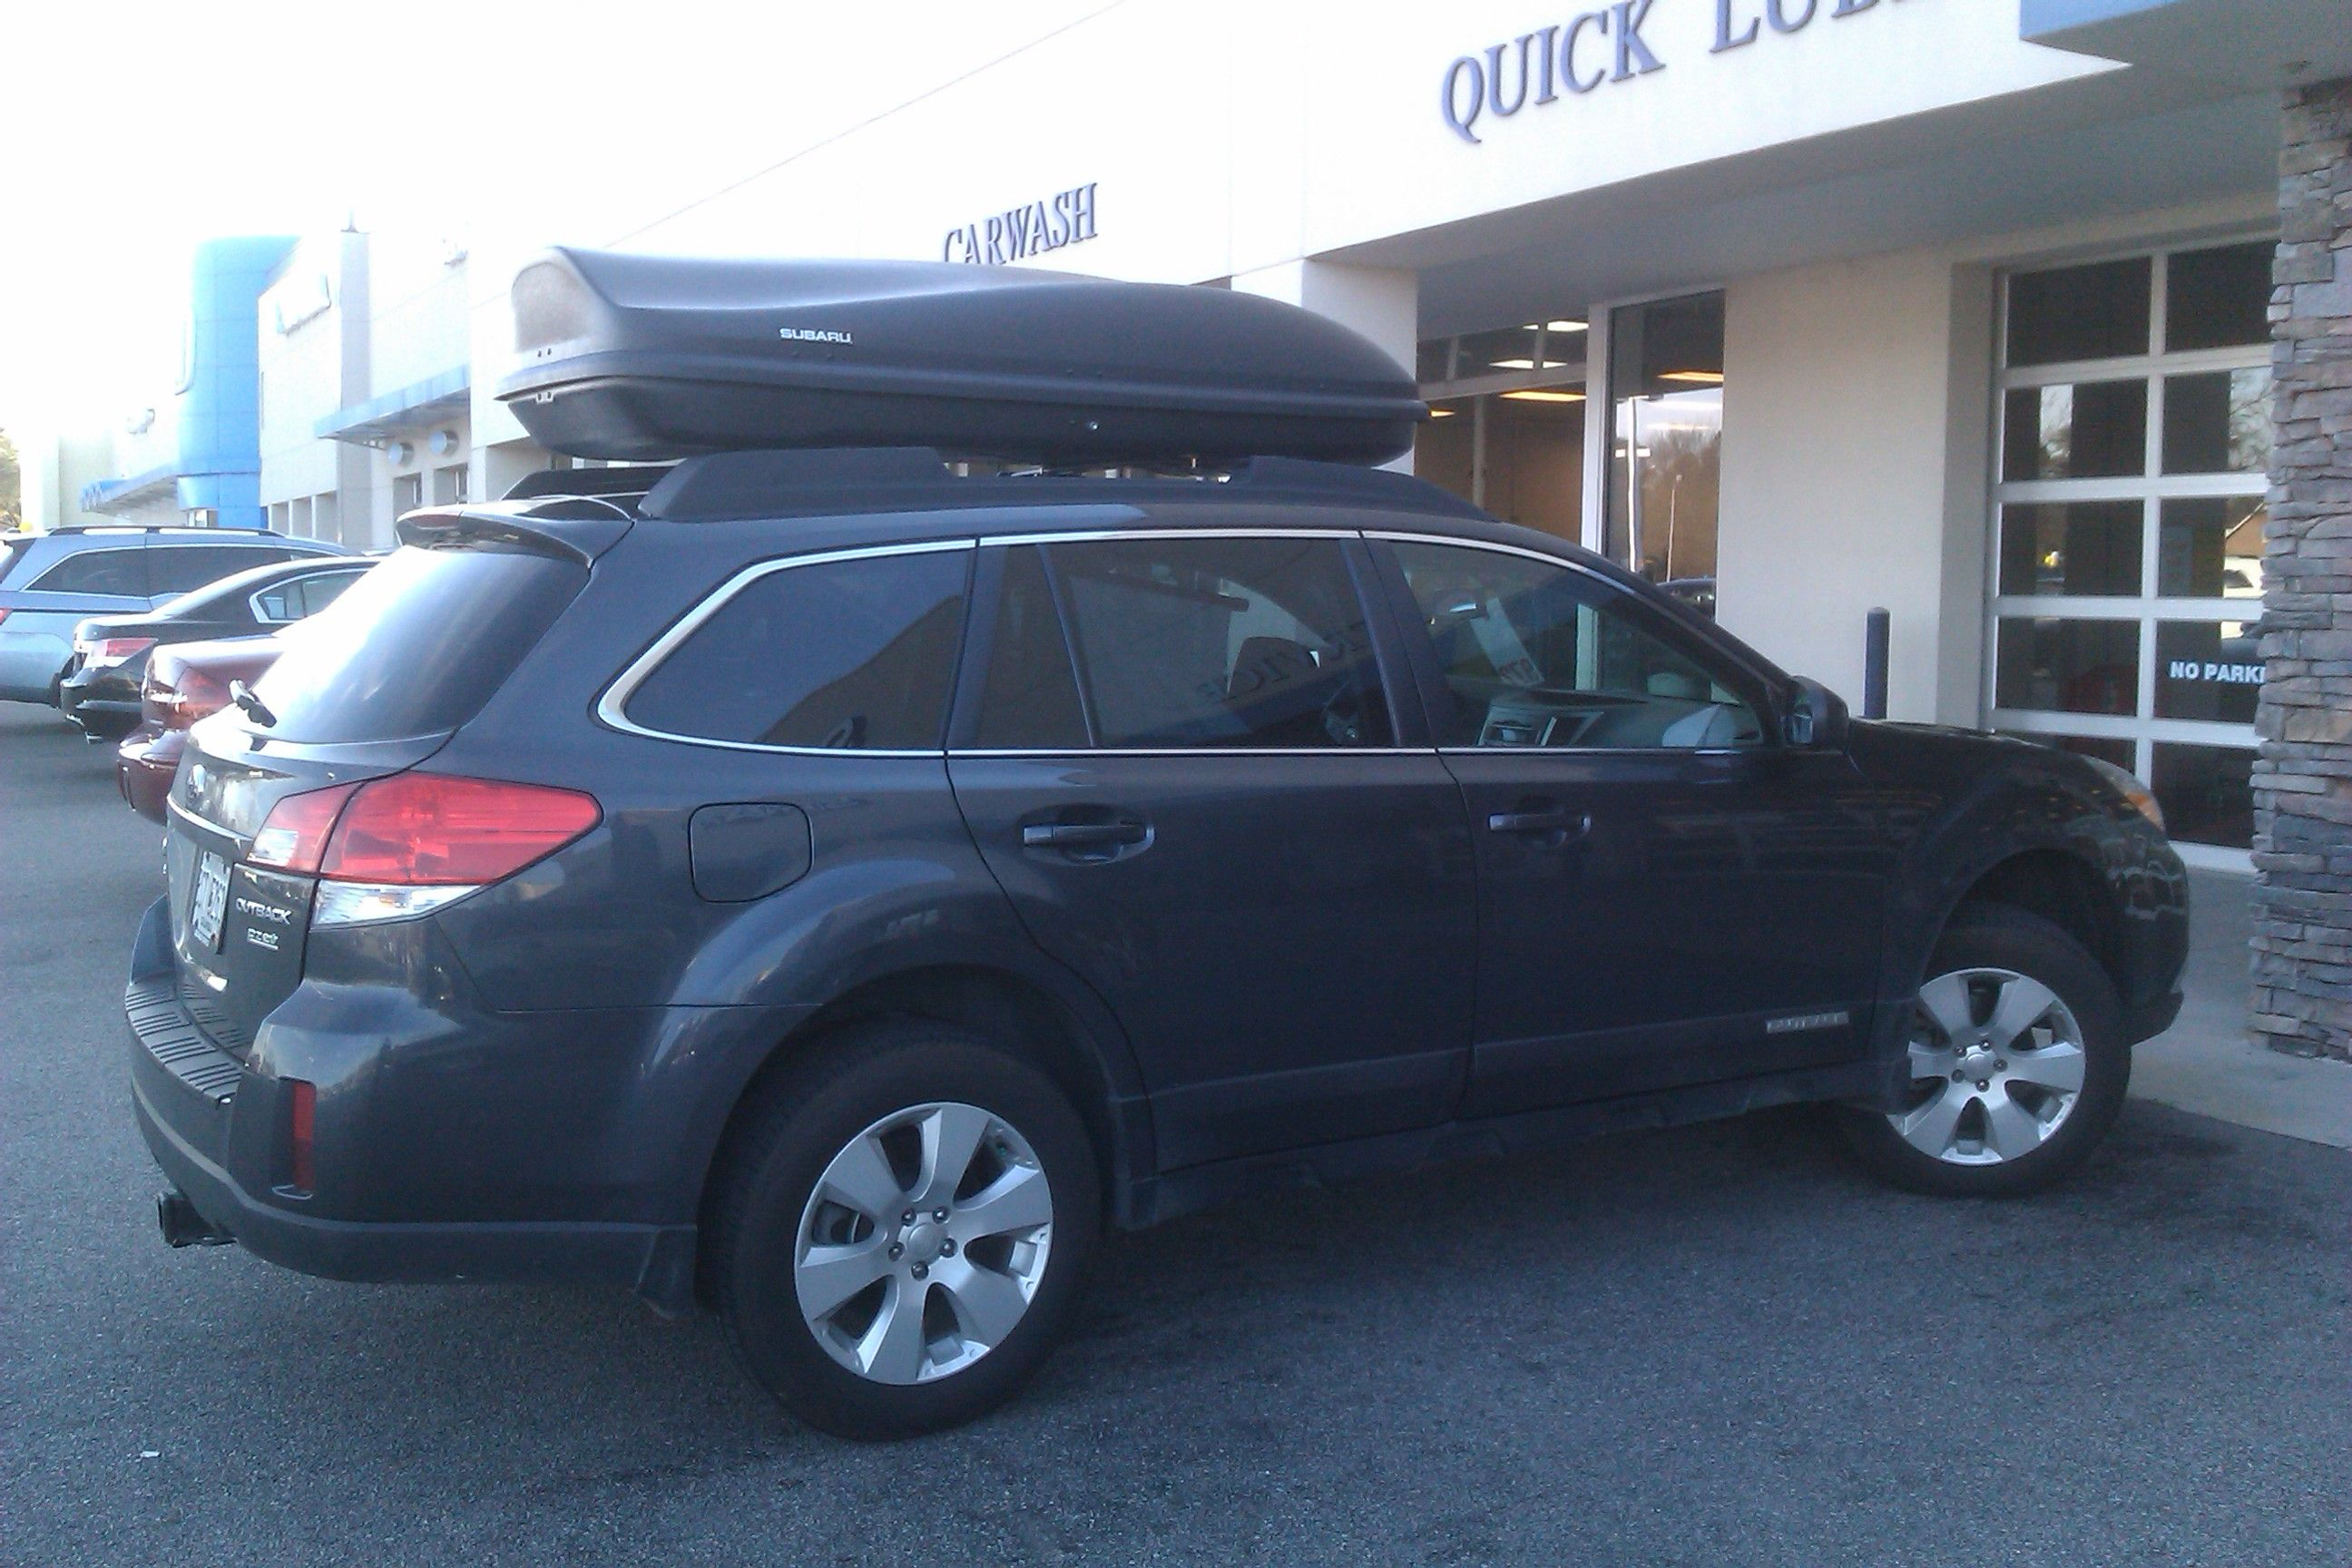 This 2012 subaru outback is sporting the extended roof cargo this 2012 subaru outback is sporting the extended roof cargo carrier very spacious for any vanachro Images